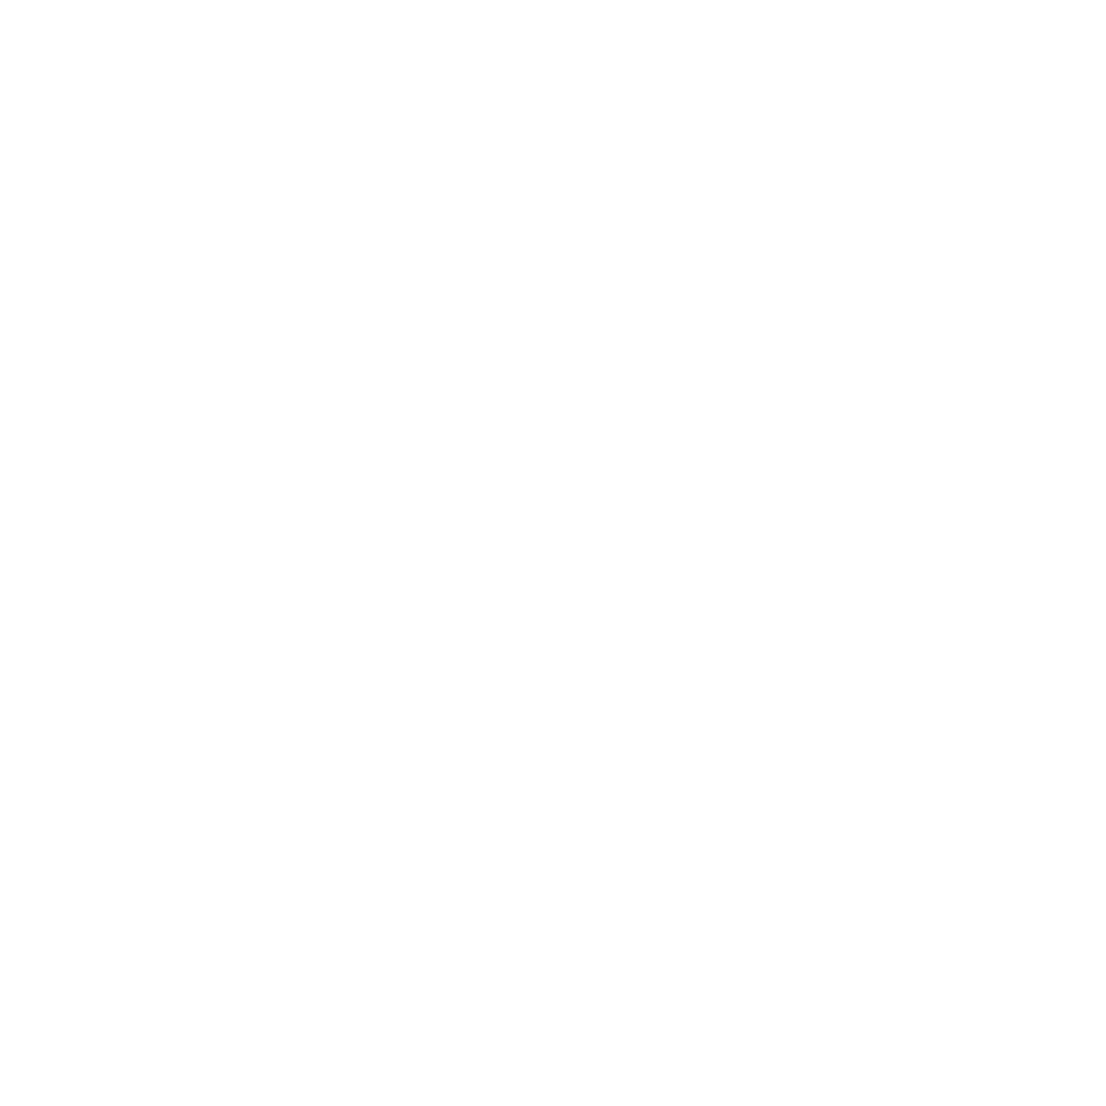 South Square Trust